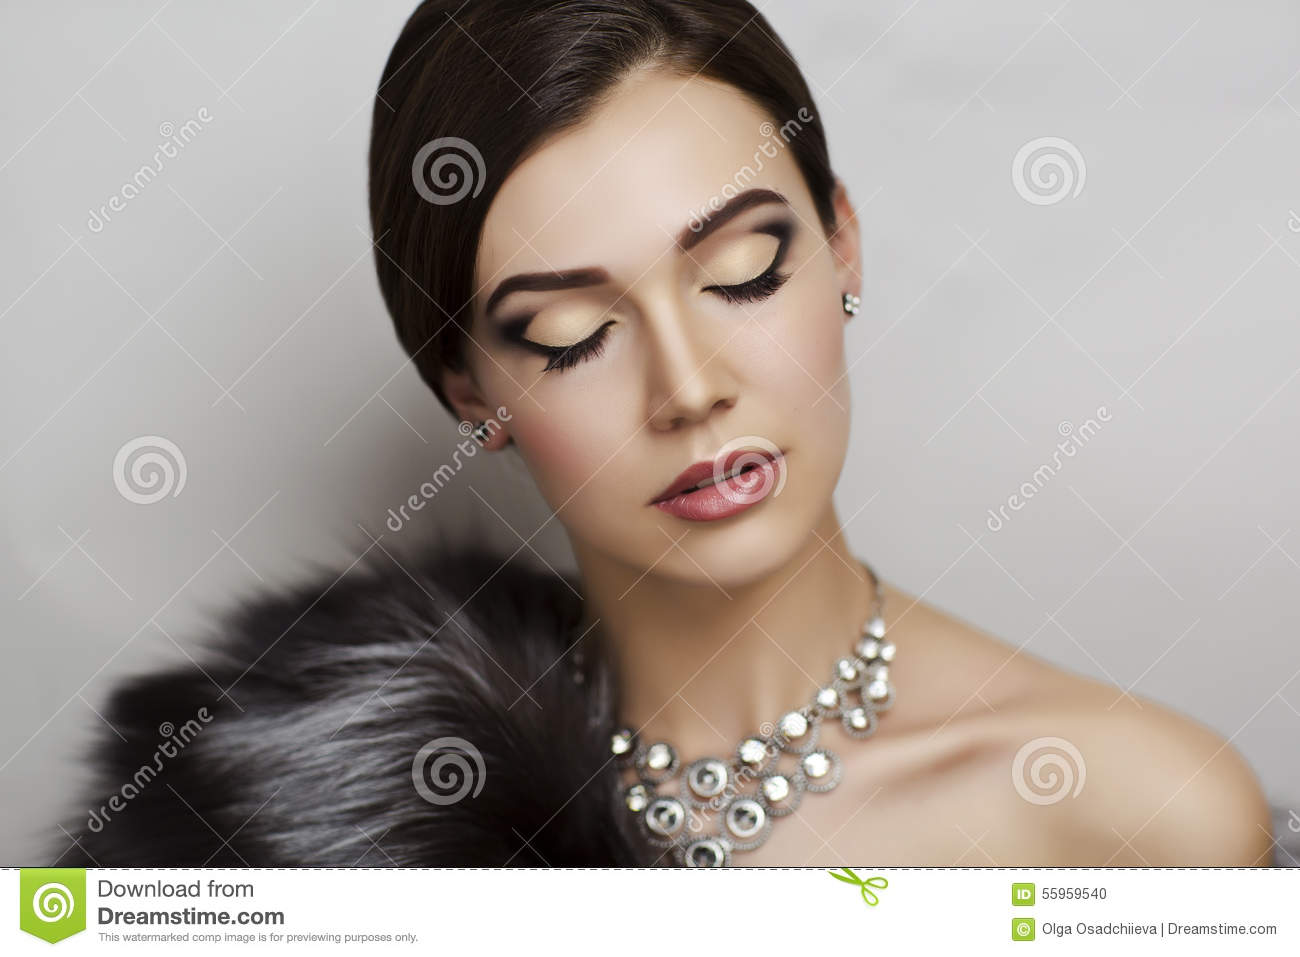 Luxury woman stock photo image 55959540 for Luxury women